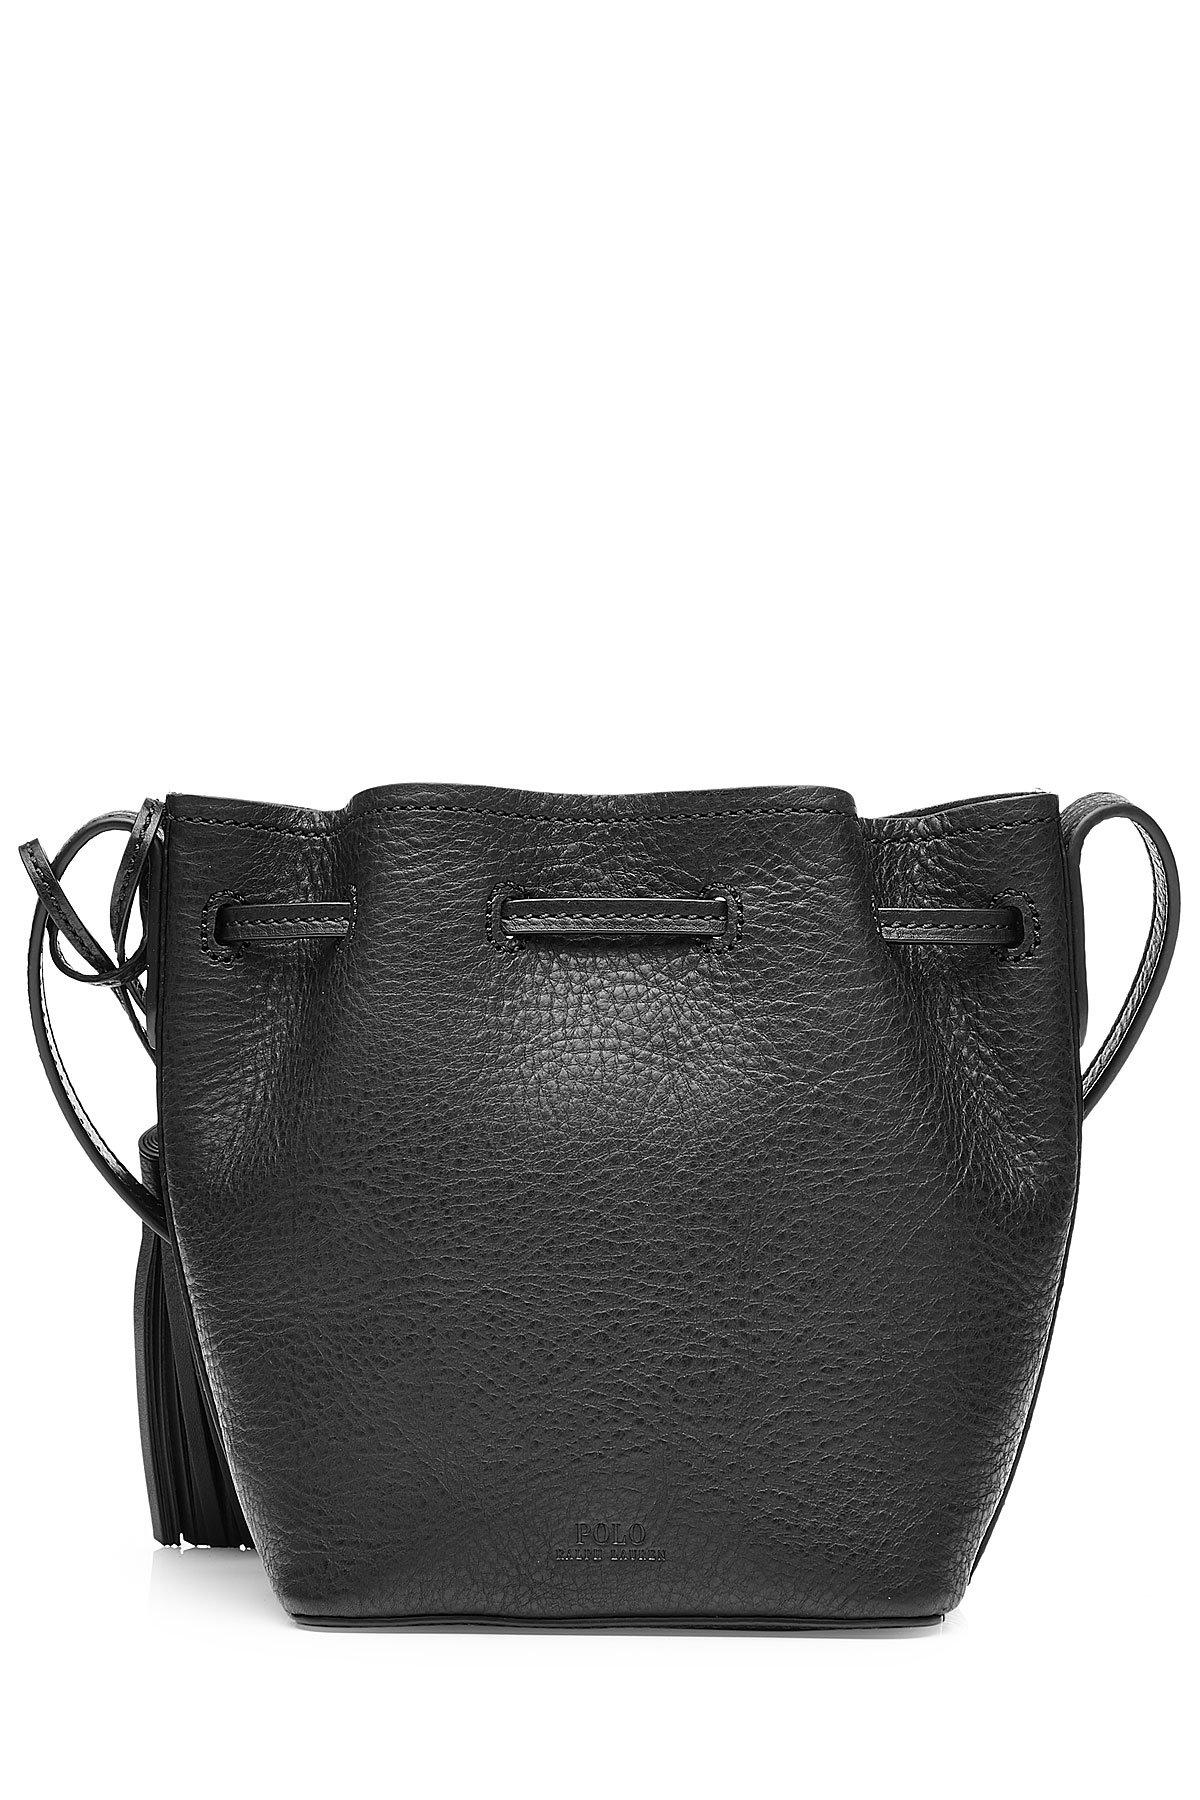 Lyst - Polo Ralph Lauren Bucket Shoulder Bag With Tassels In Black